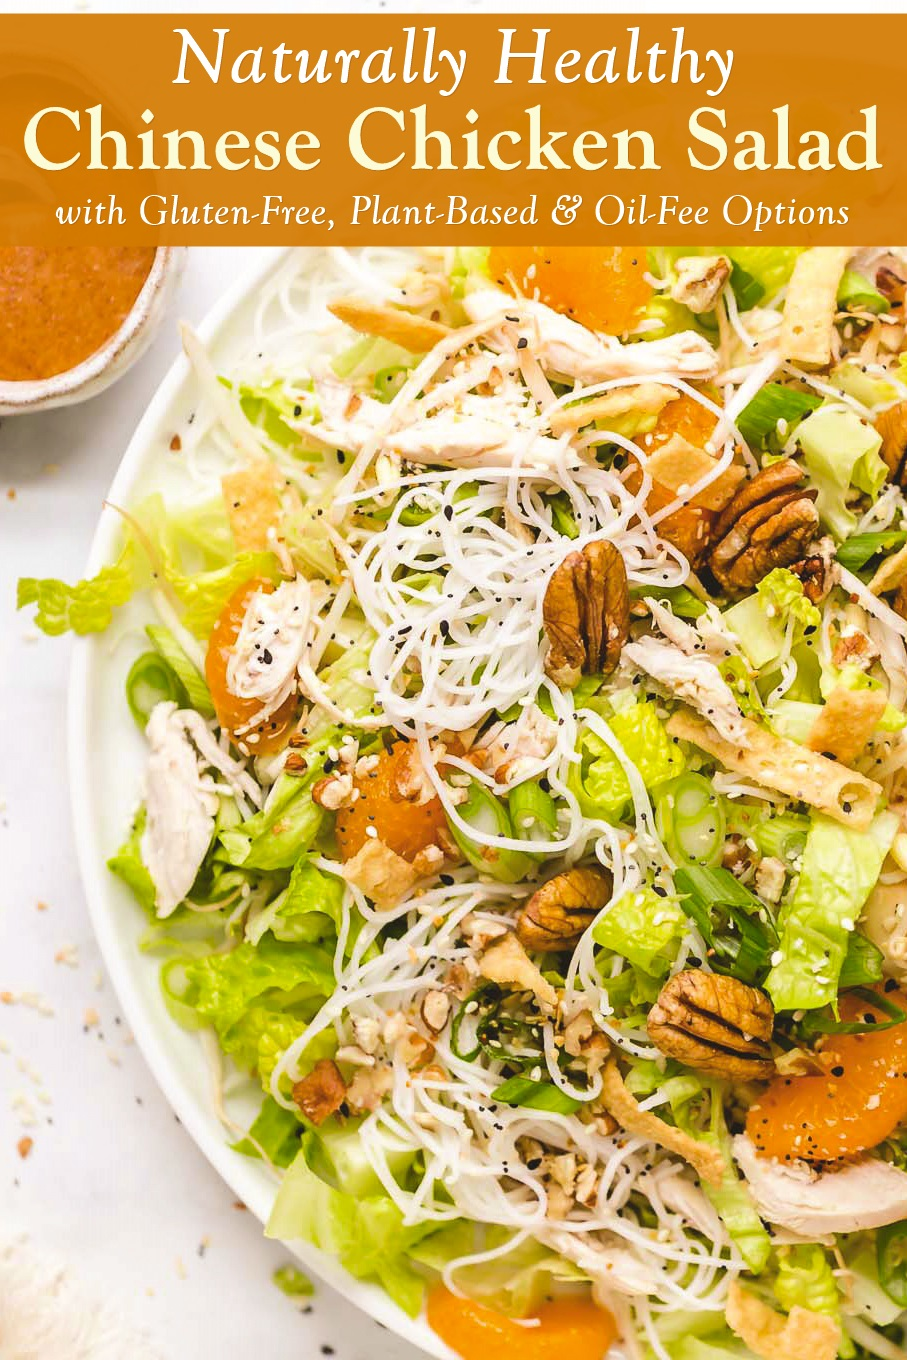 Healthy Chinese Chicken Salad Recipe with Plant-Based, Gluten-Free & Oil-Free Options and a Rich Pecan Dressing